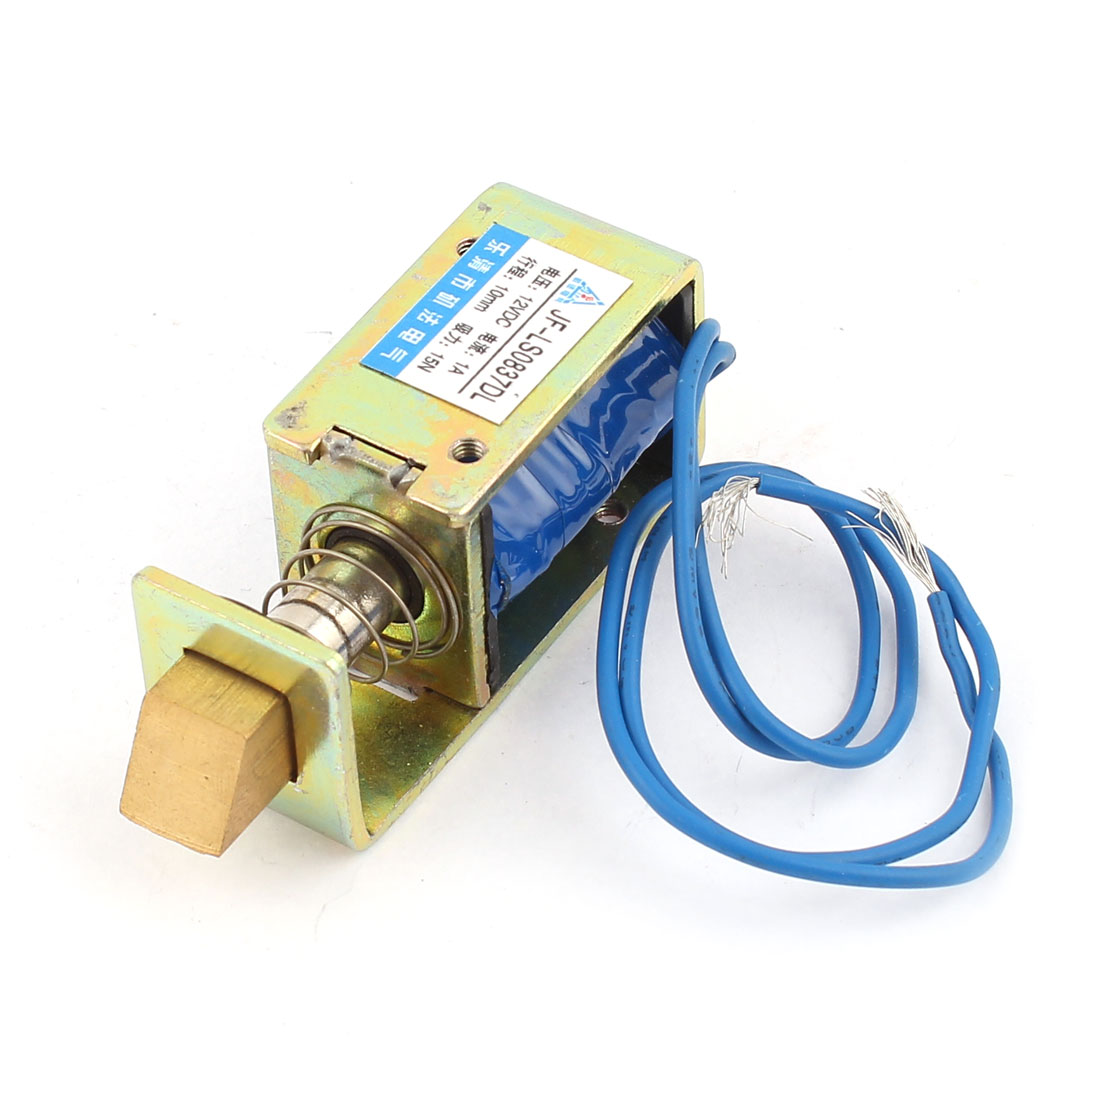 JF-0837DL DC 12V 1A 10mm 15N Pull Type Open Frame Electromagnet Solenoid for Door Lock